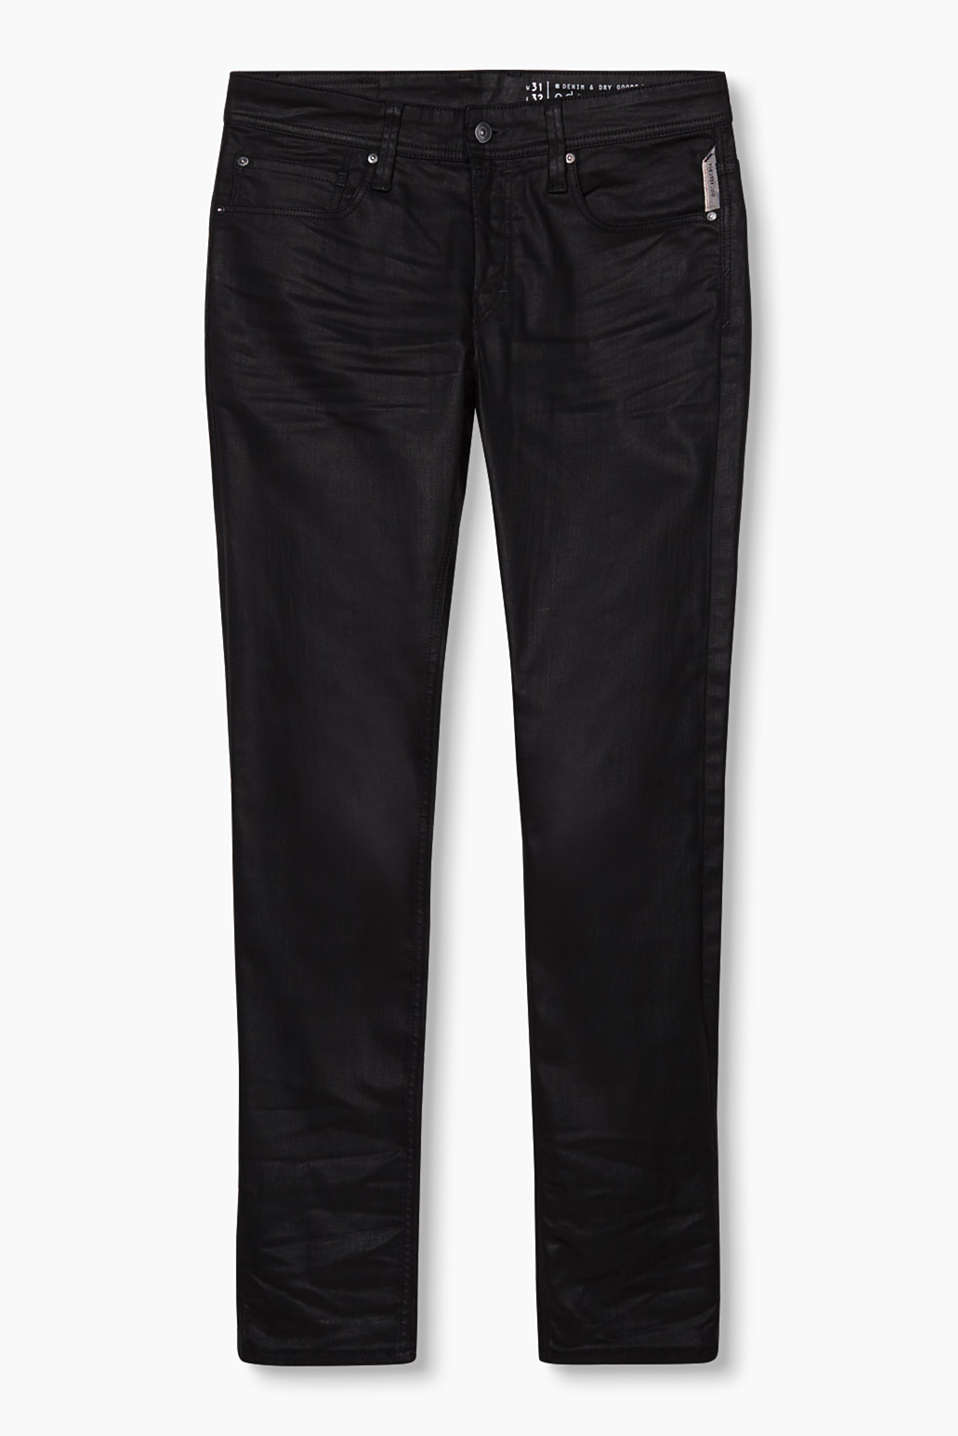 edc Coated stretch jeans at our Online Shop